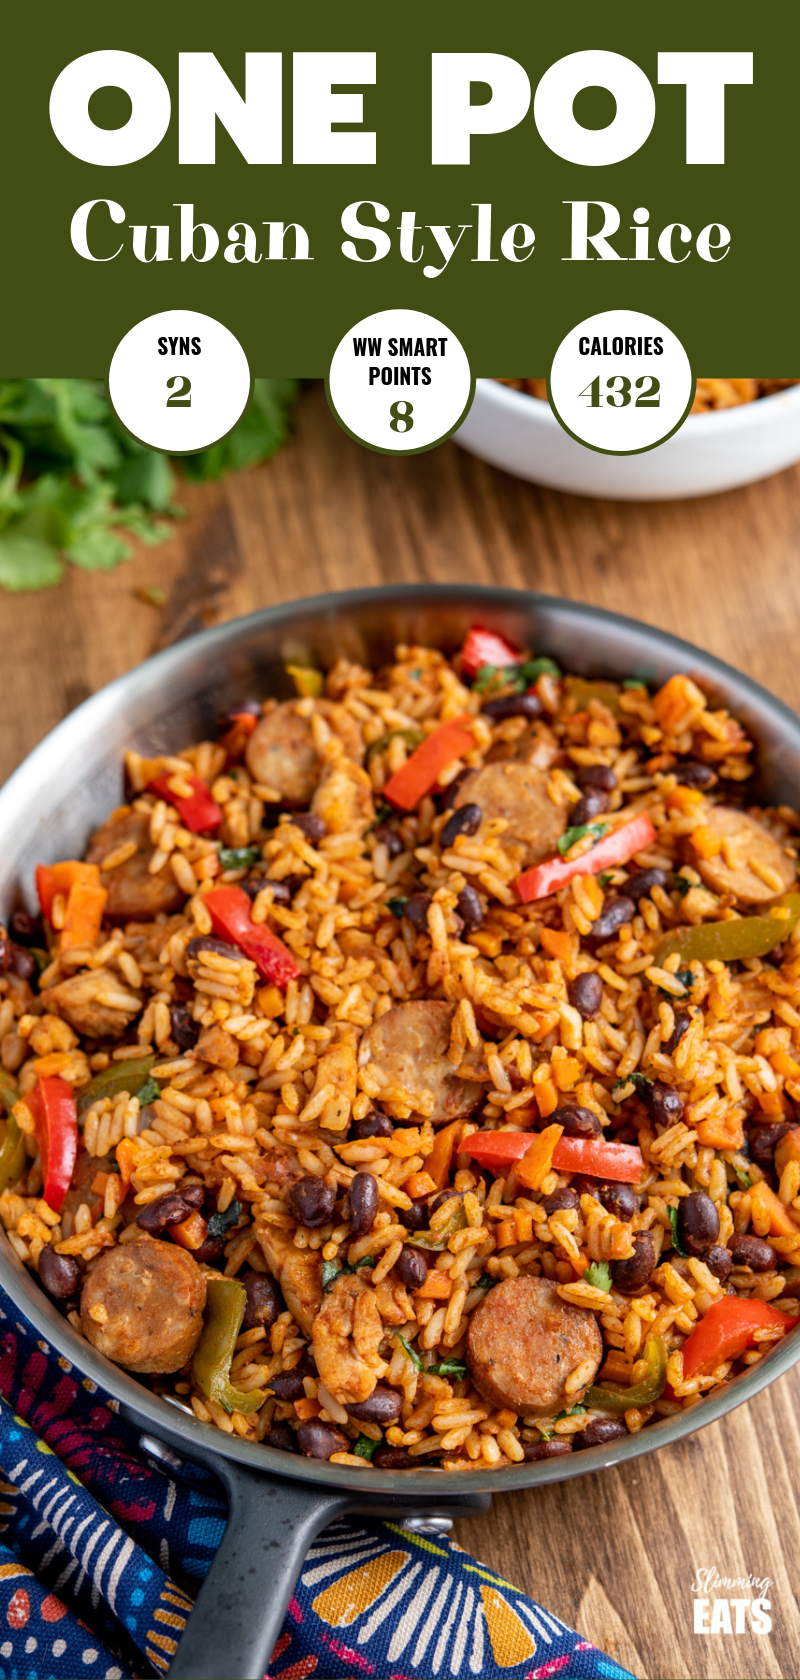 One Pot Cuban Style Rice with chicken and sausage pin image